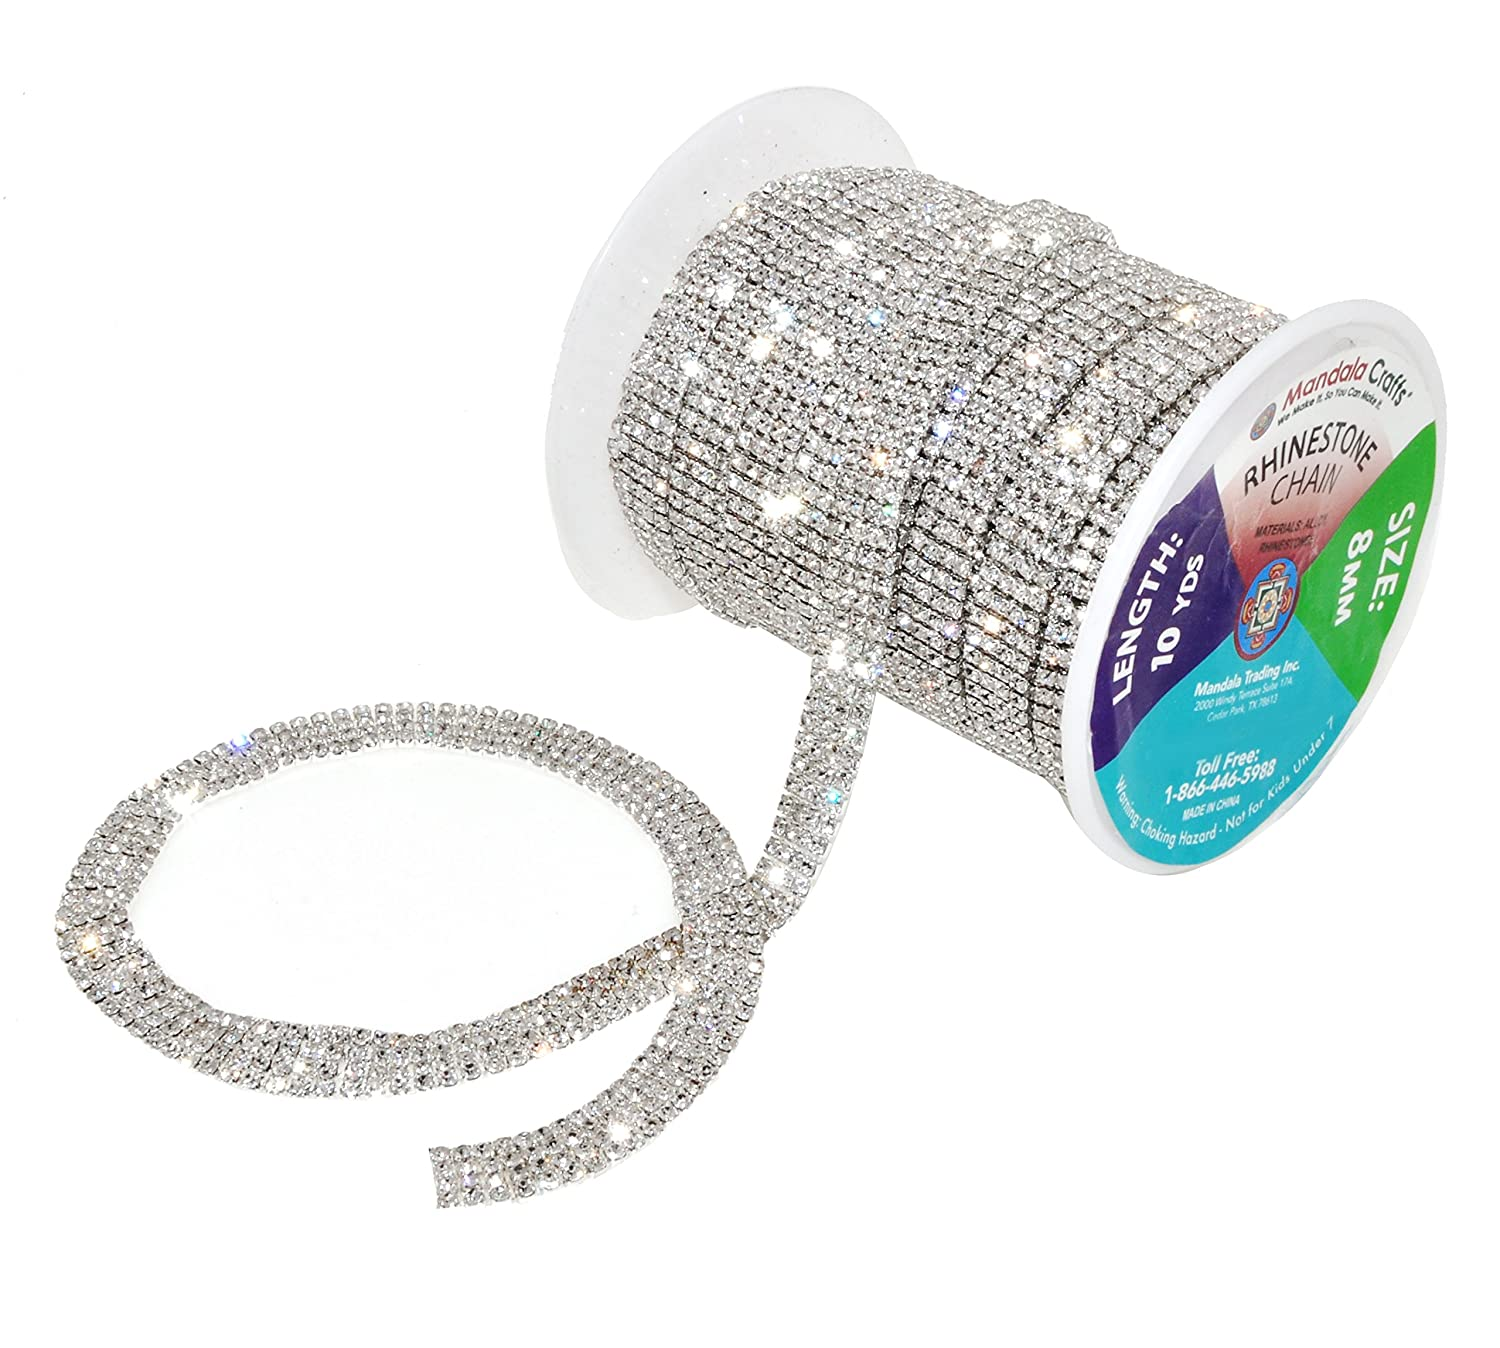 Mandala Crafts Rhinestone Cup Chain Trim Roll for Jewelry Making, Glass Crystal Glam Decor, Simulated Diamond Bling Wraps, Veils, Cakes